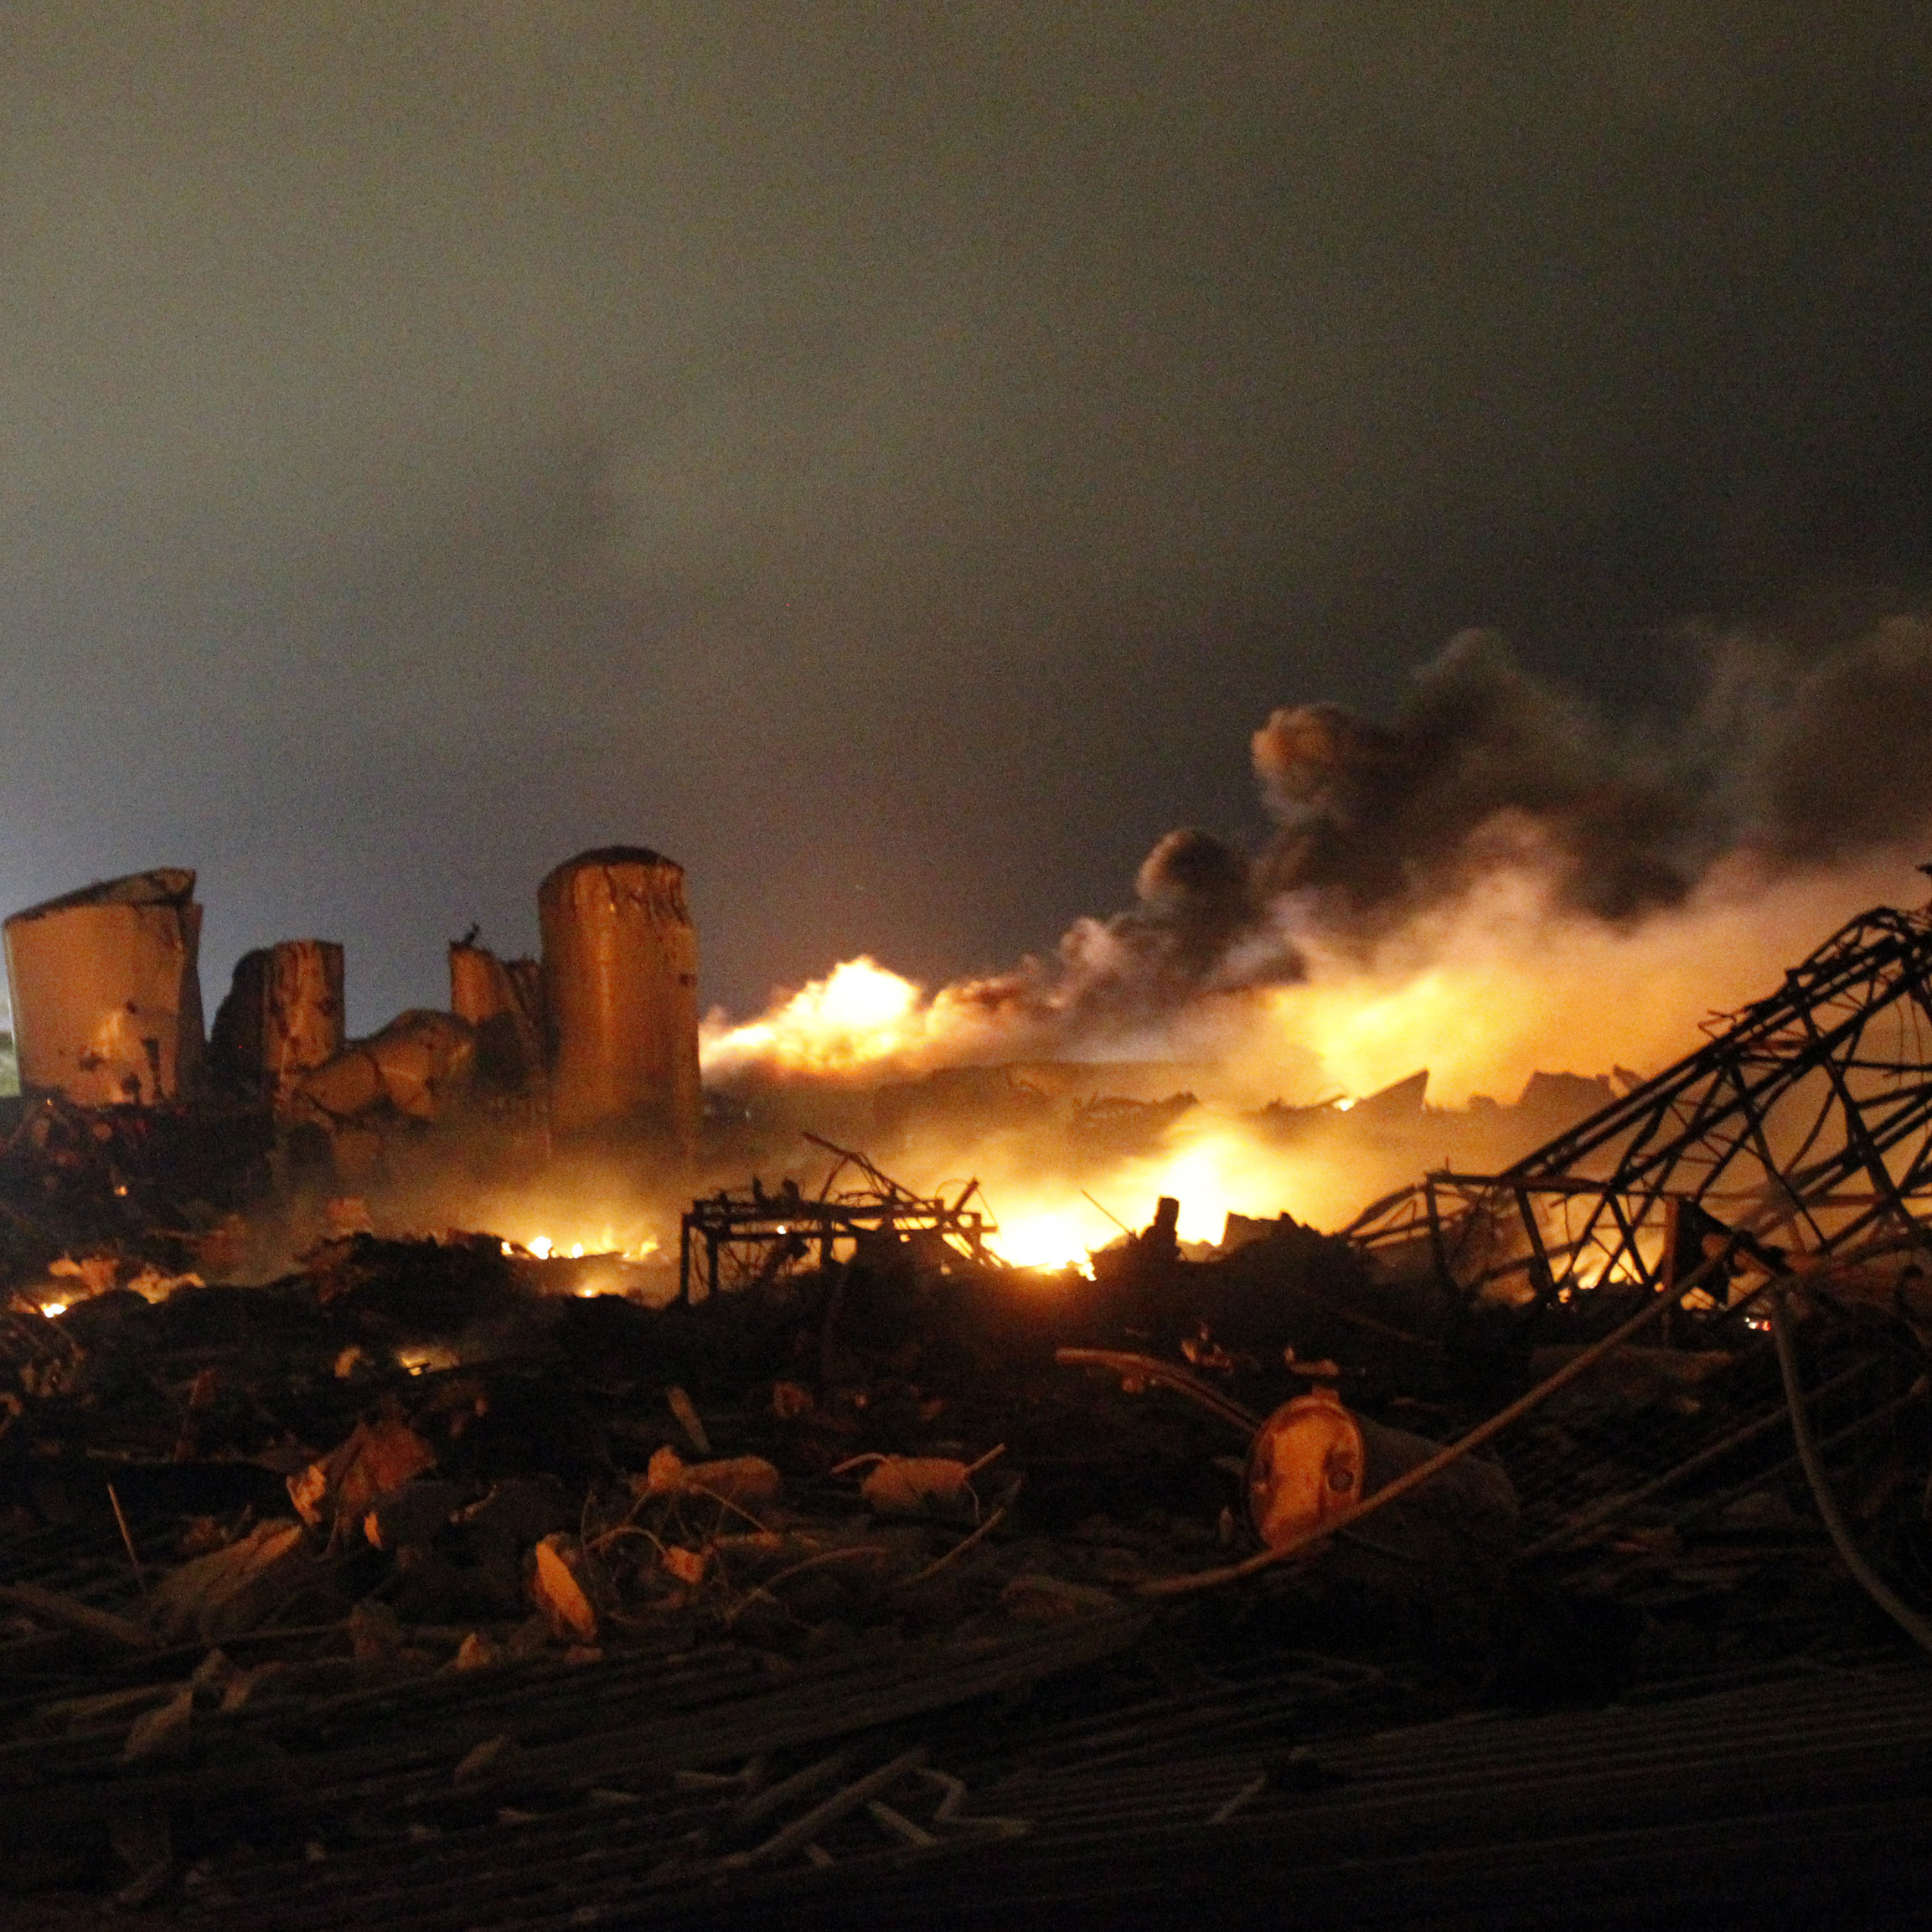 The remains of a fertilizer plant in West, Texas, were still burning early Thursday after an explosion there Wednesday evening.